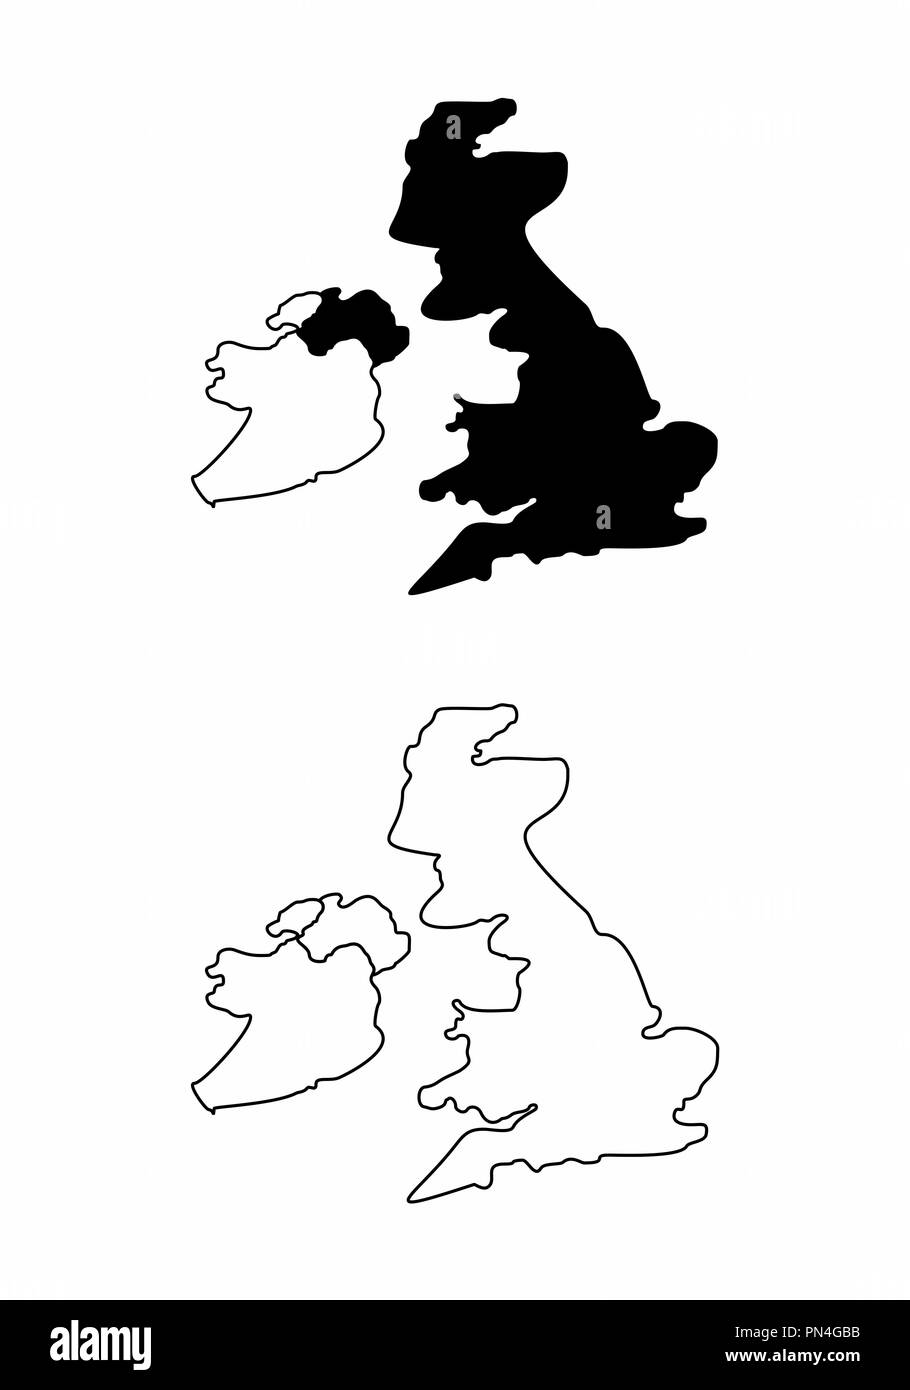 Maps of United Kingdom - Stock Vector